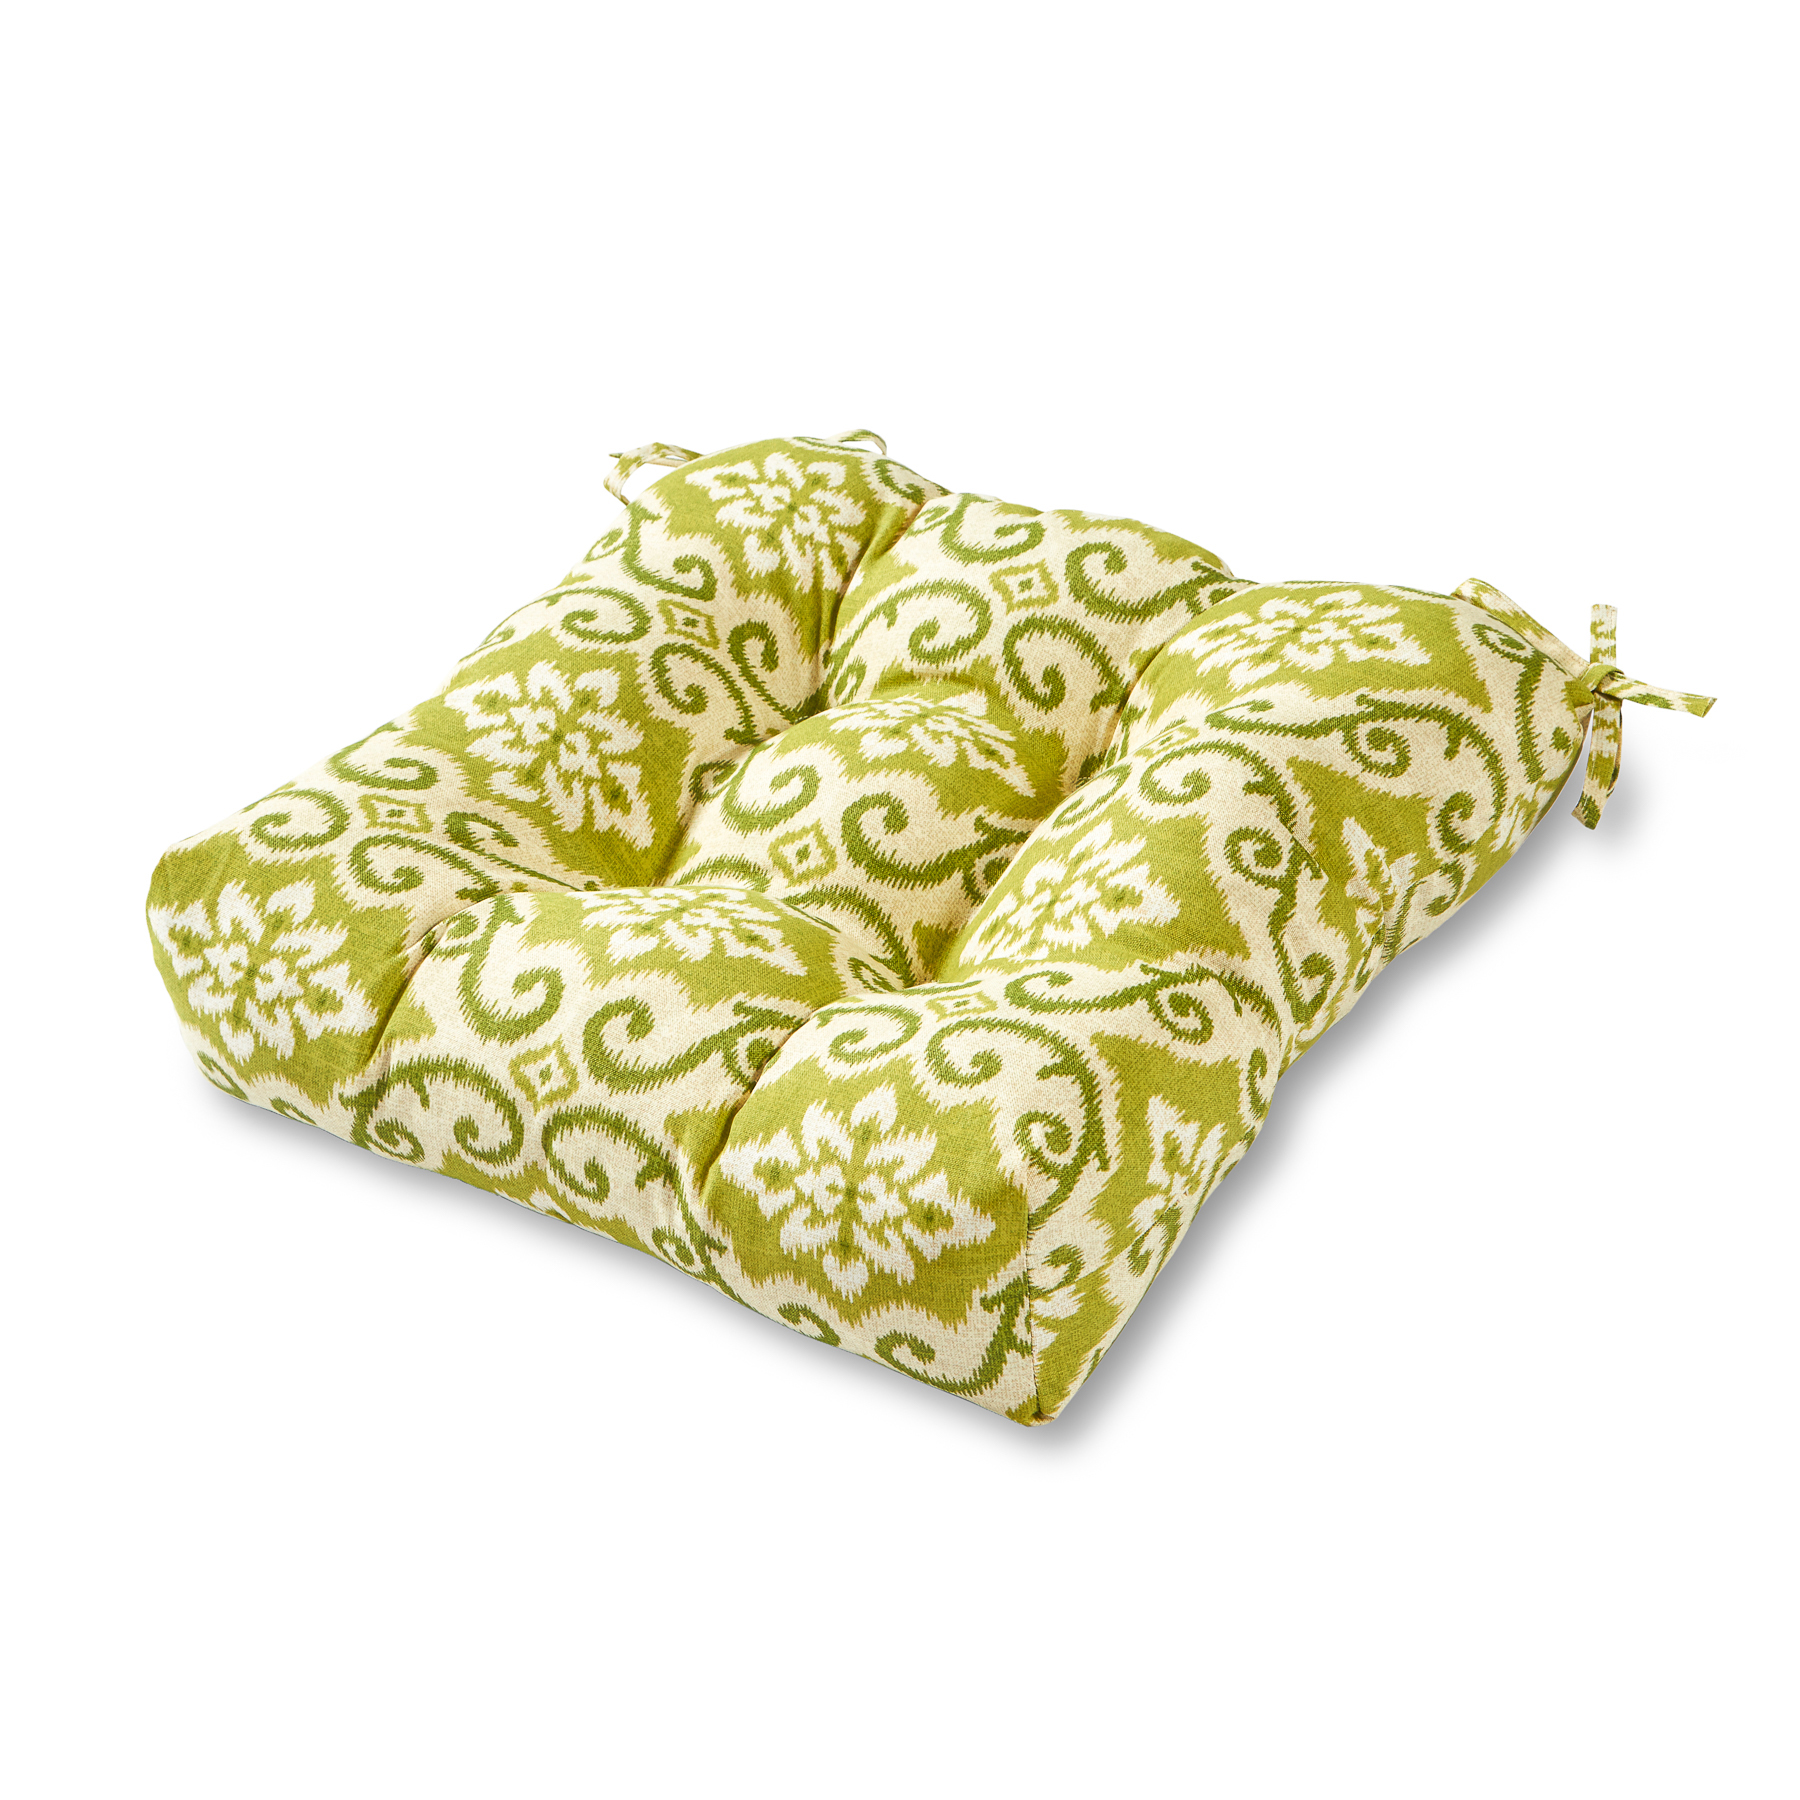 Green Ikat 20 in. Square Plush Outdoor Chair Cushion